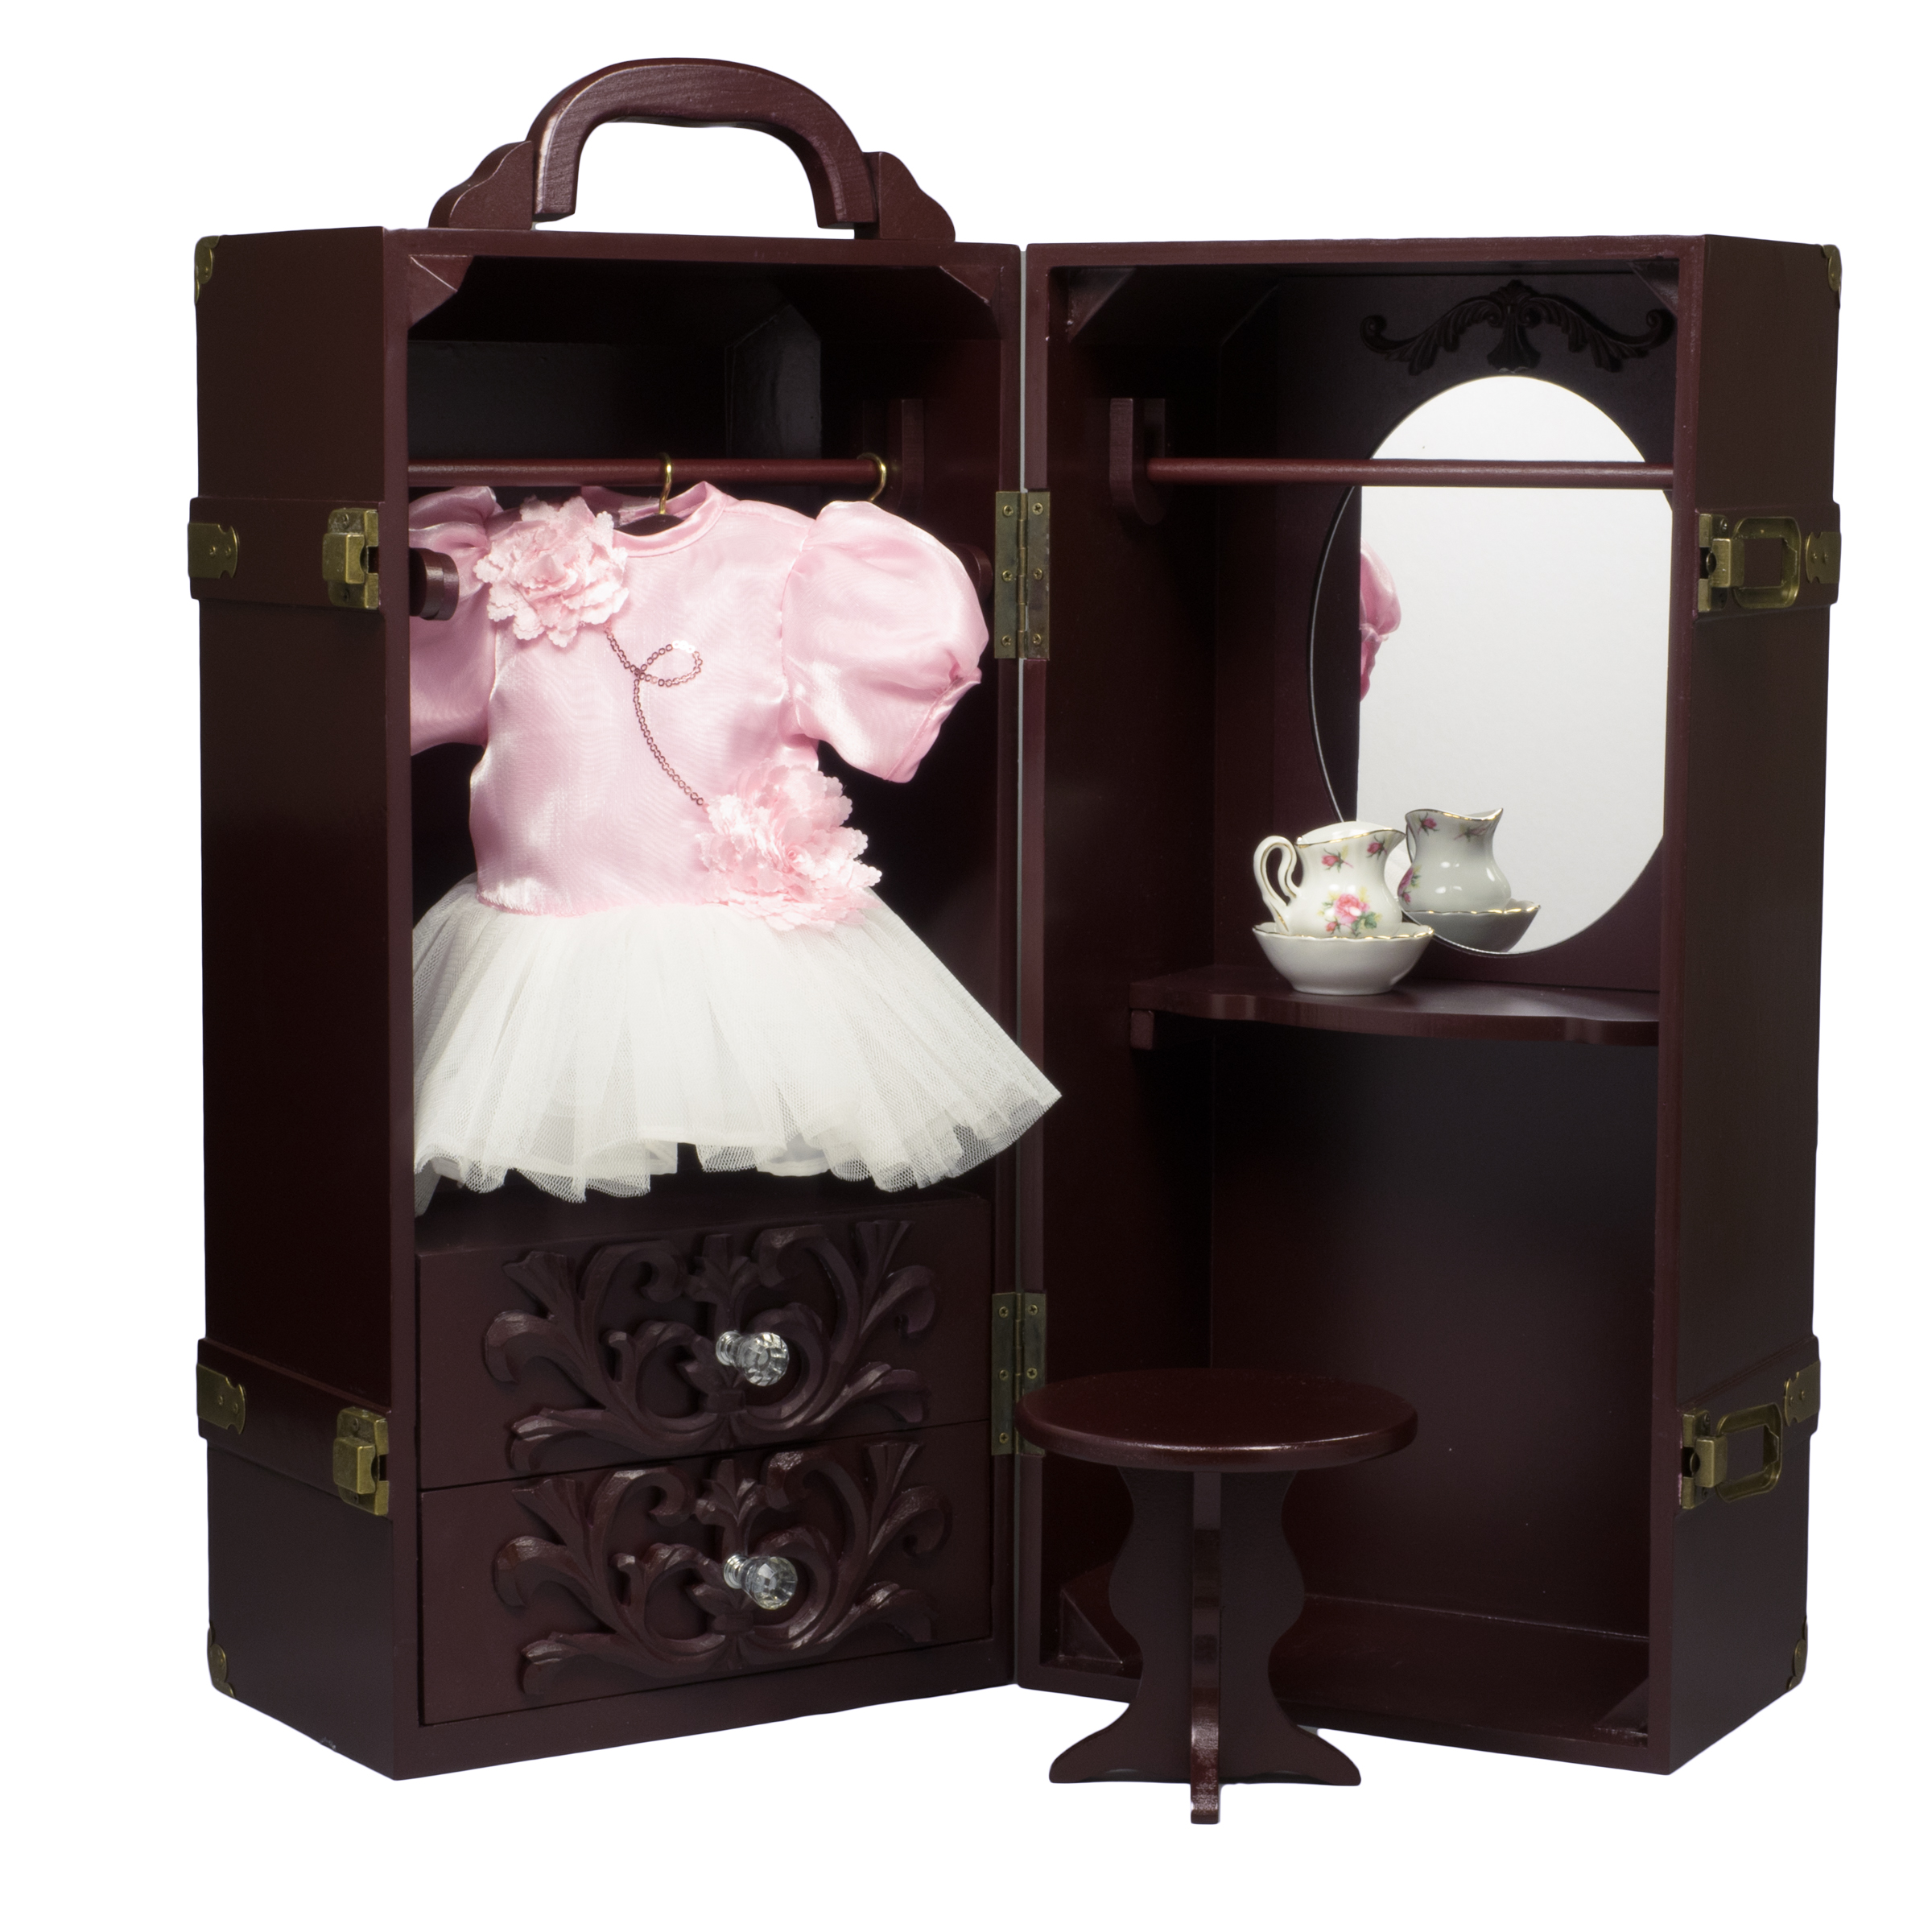 "18"" Doll & Clothes Storage Case Furniture for 18"" Dolls. Wooden Doll Trunk, vanity, stool, hangers"